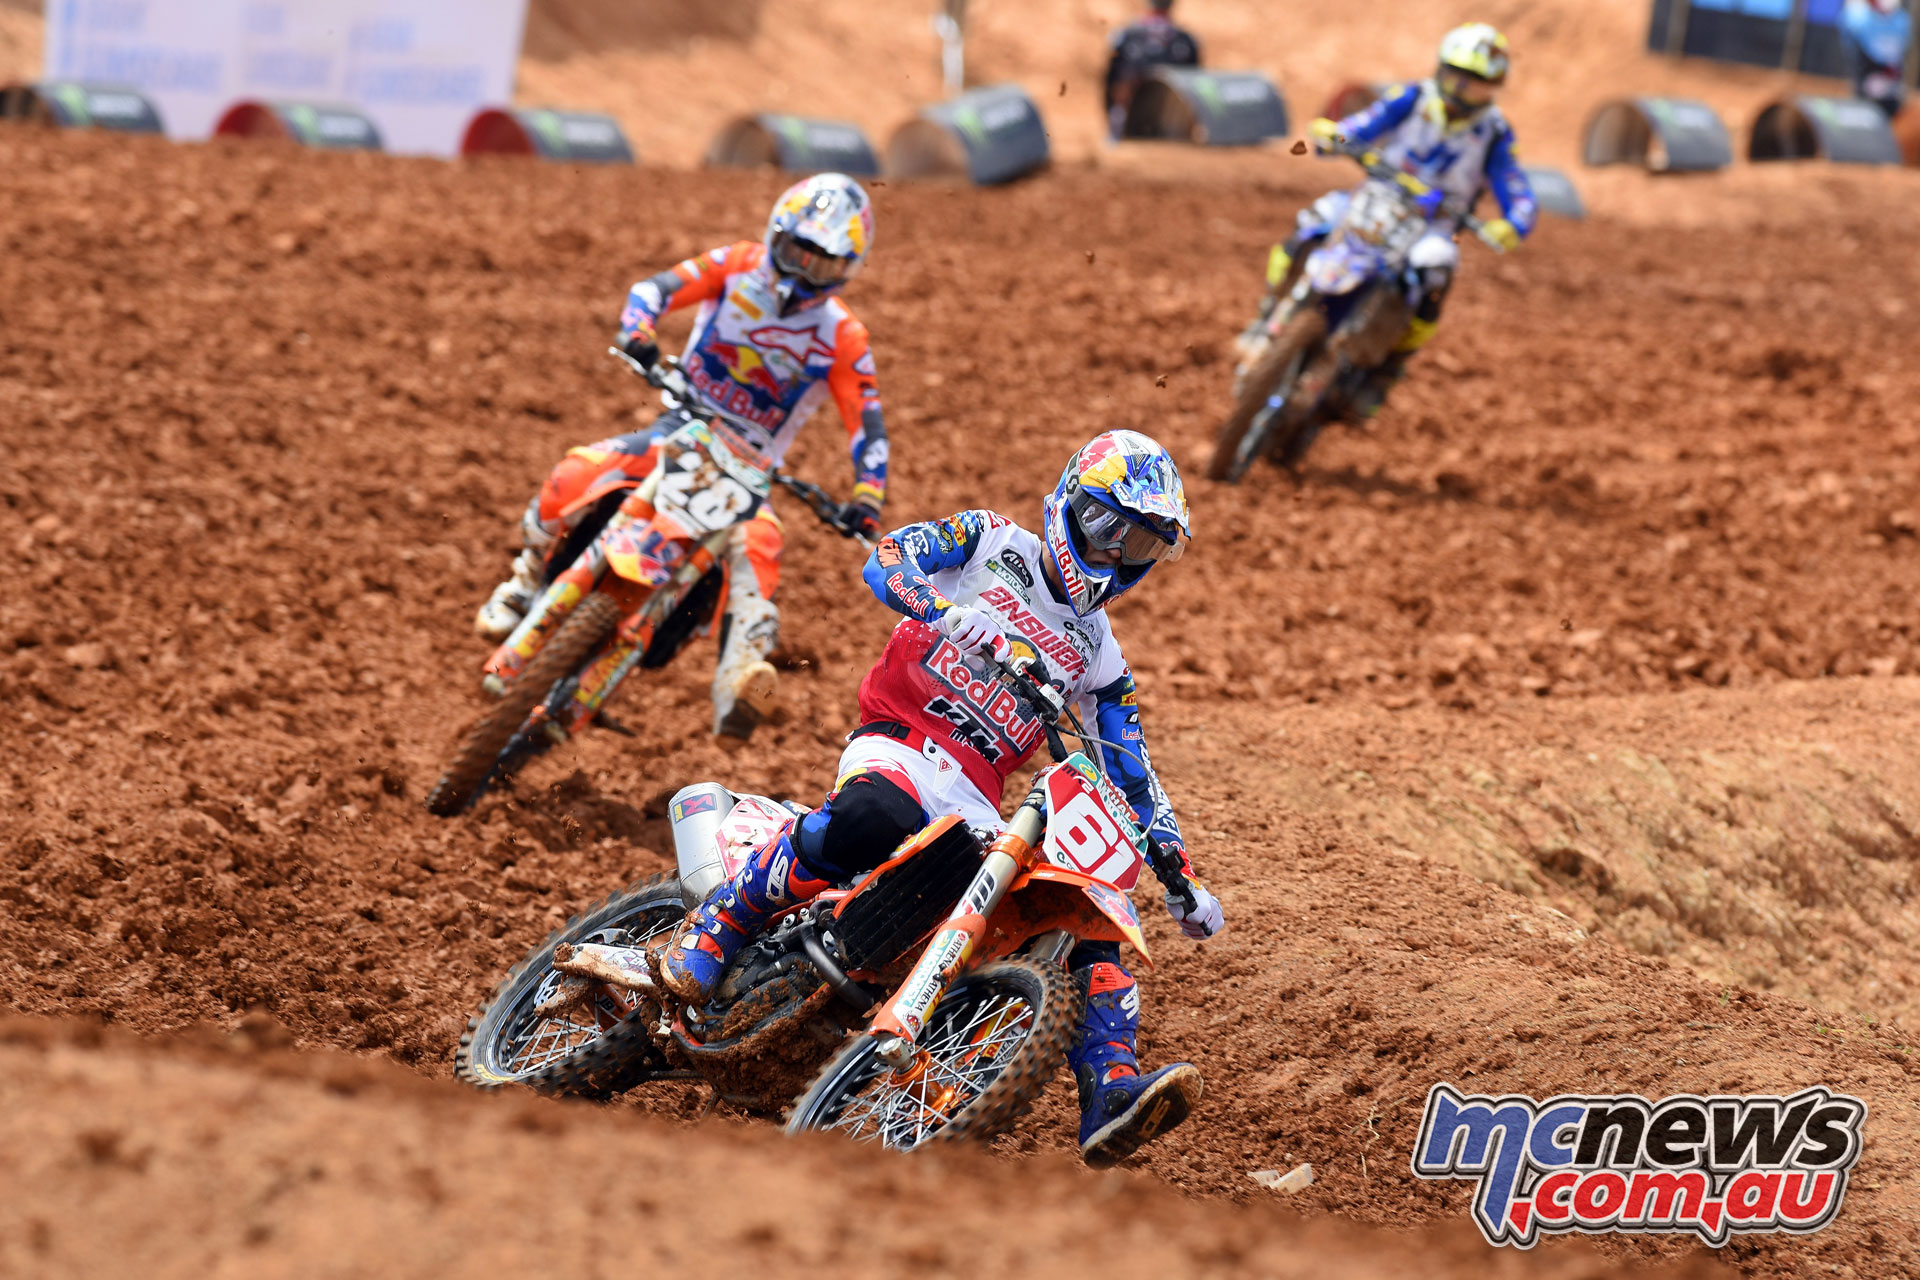 MXGP Indonesia MX Prado action